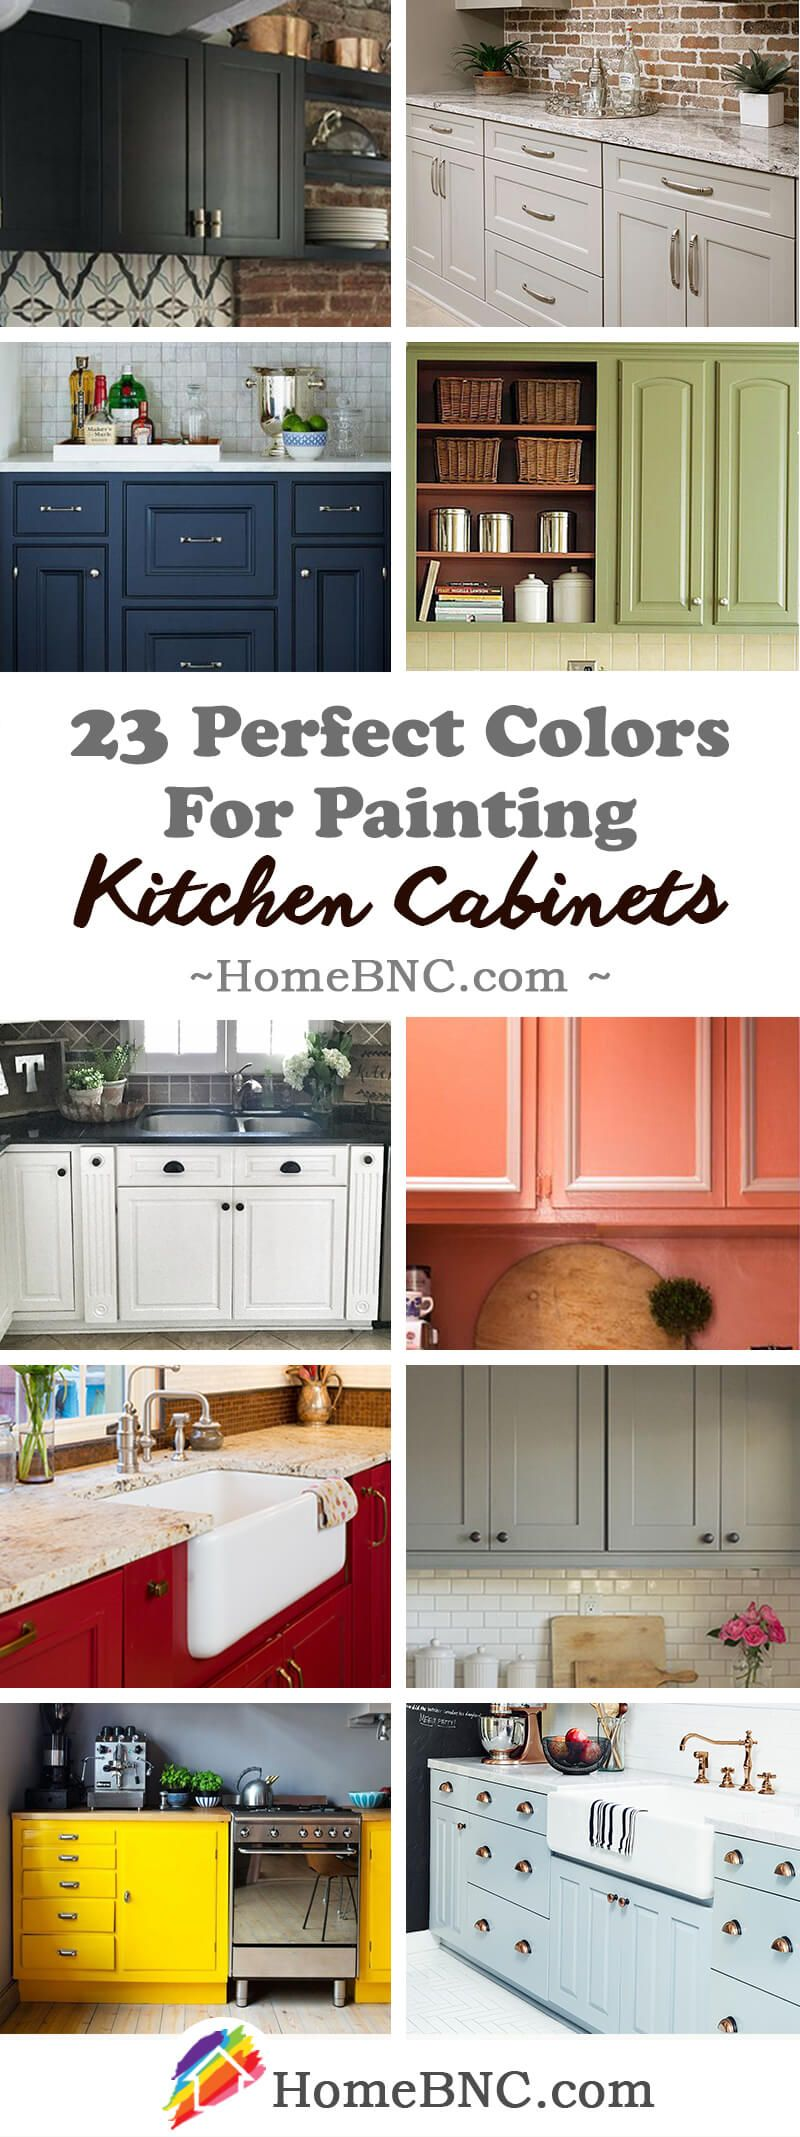 Pin by T. Clark on Howitt ave in 2020 Painted kitchen